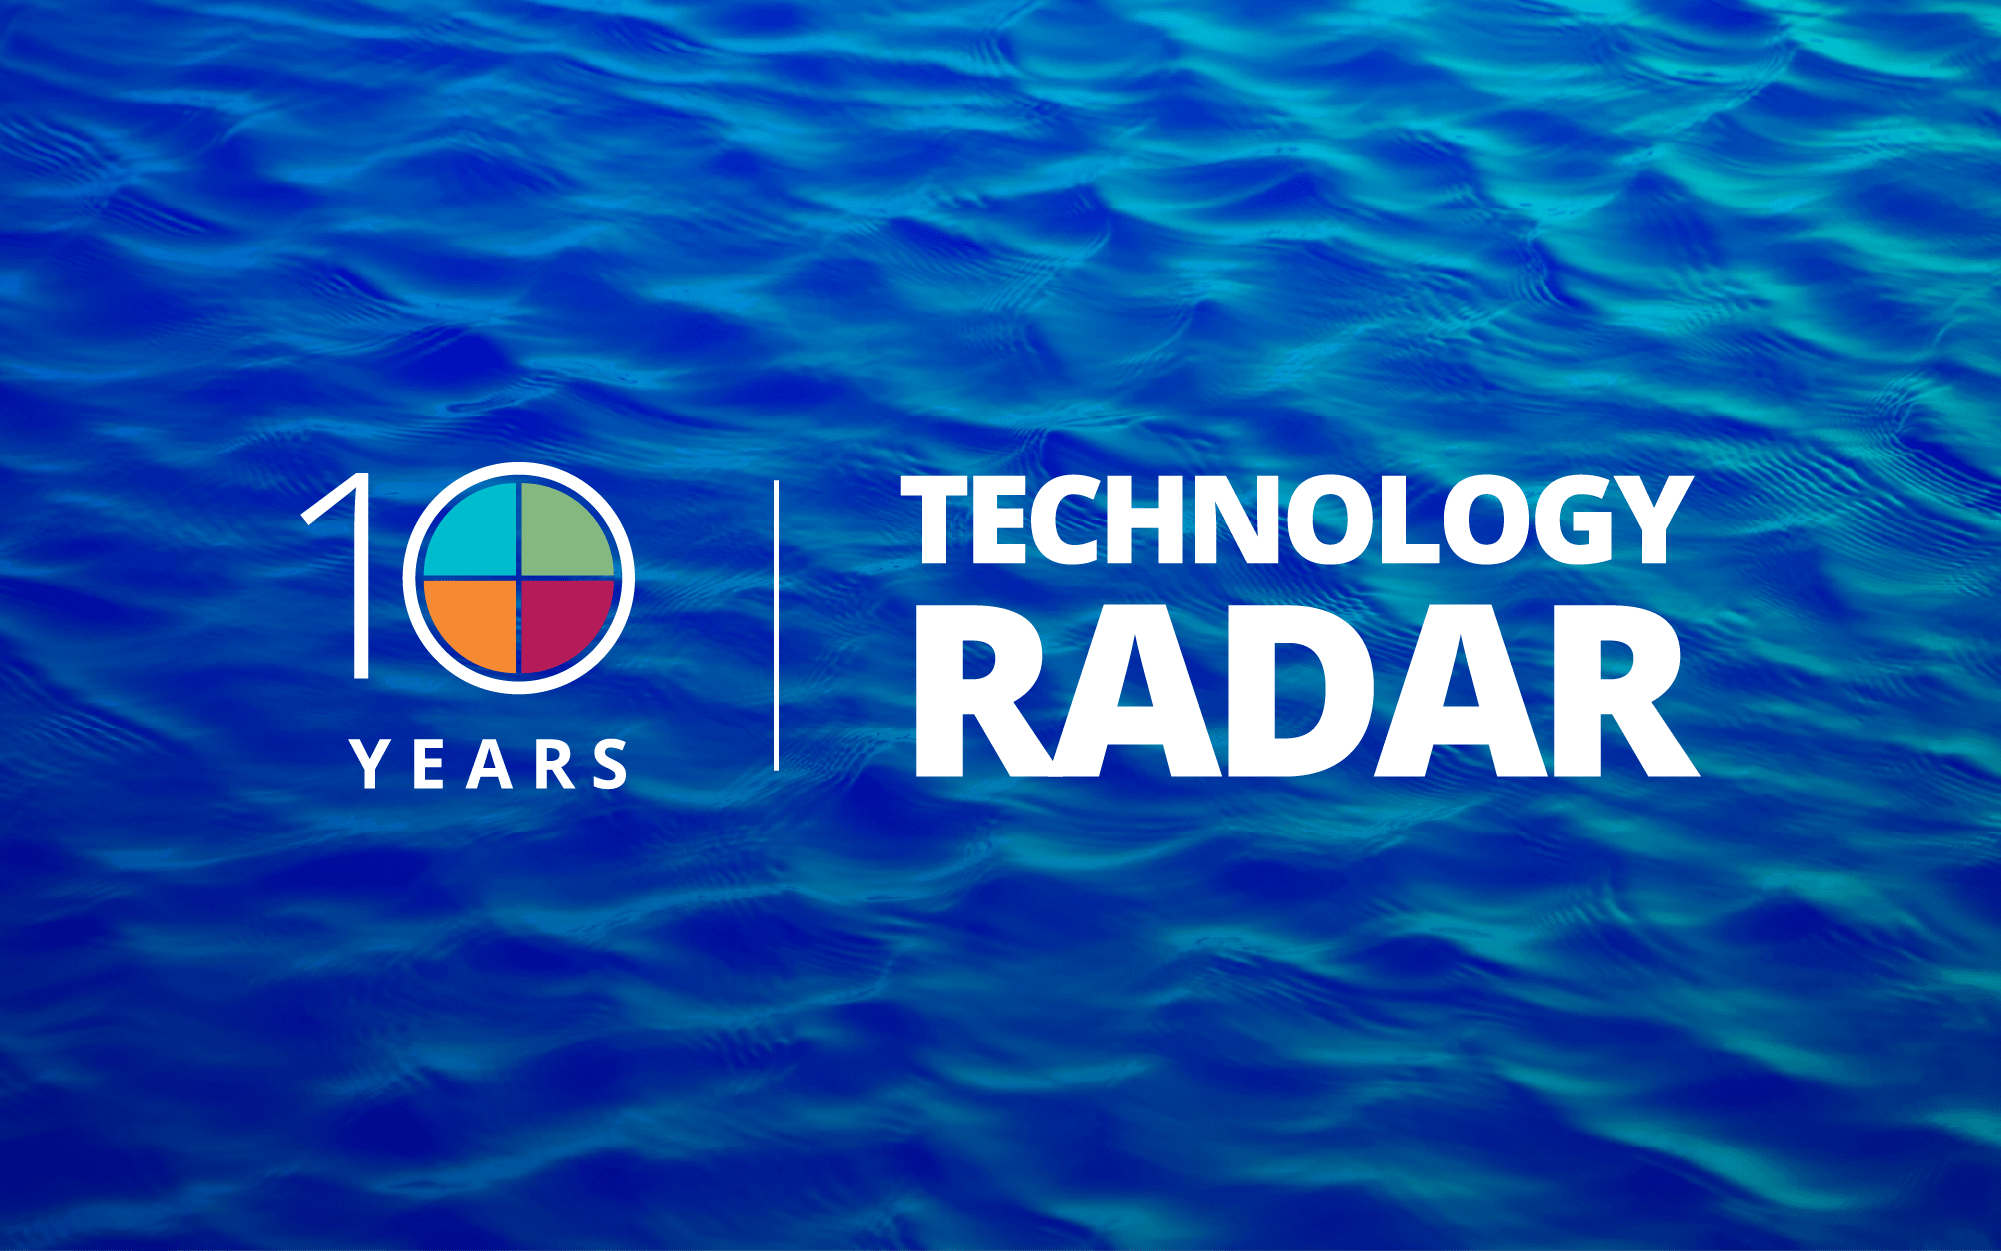 ThoughtWorks Technology Radar is 10 years old!